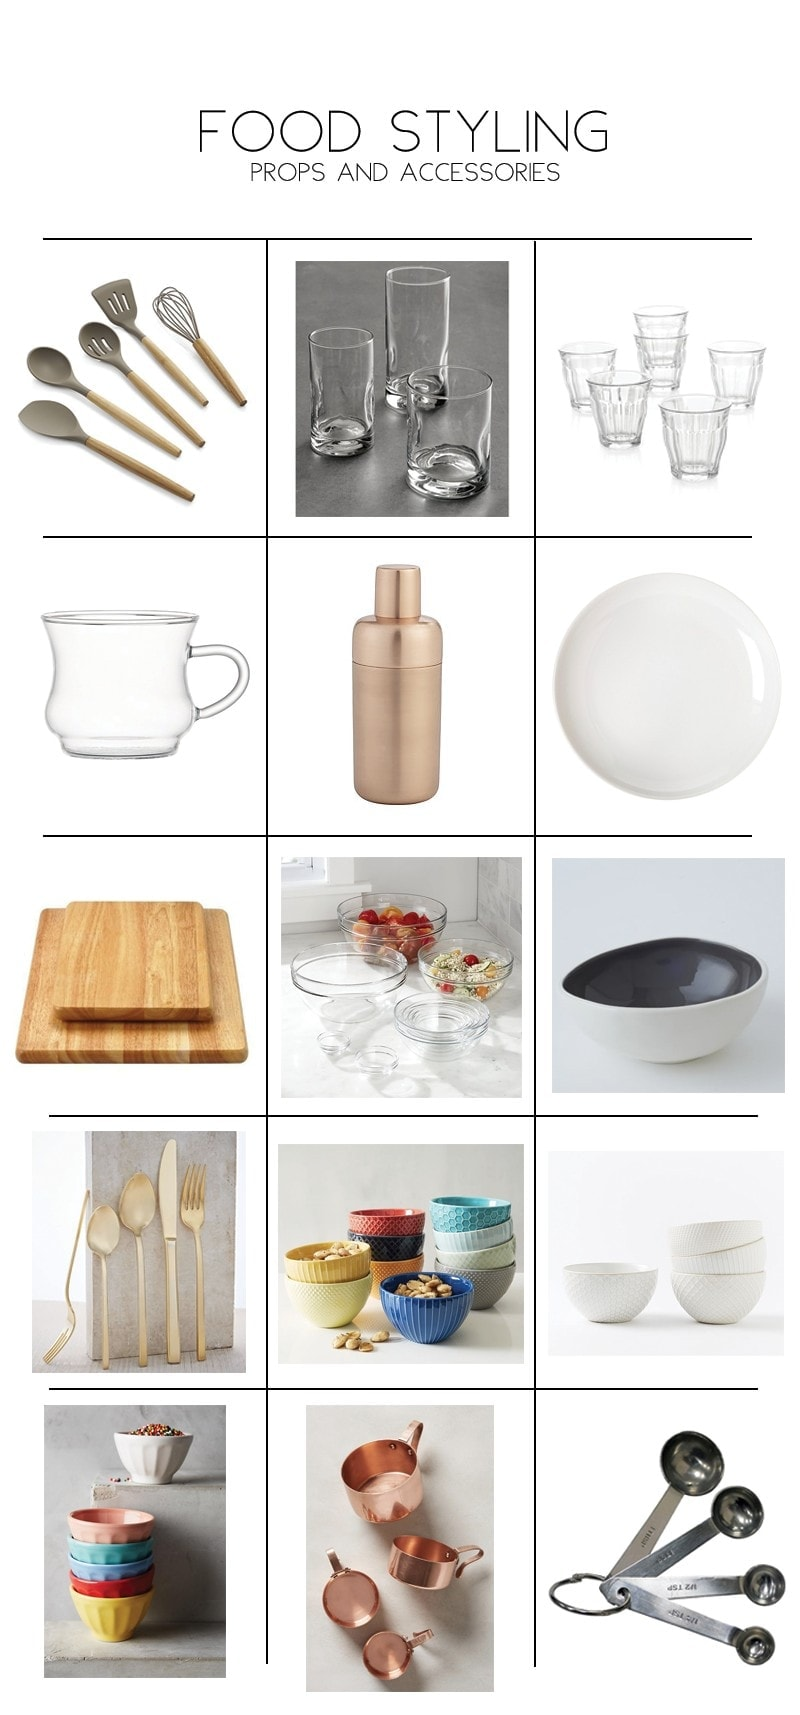 Fit Foodie Finds's favorite food style props and accessories!